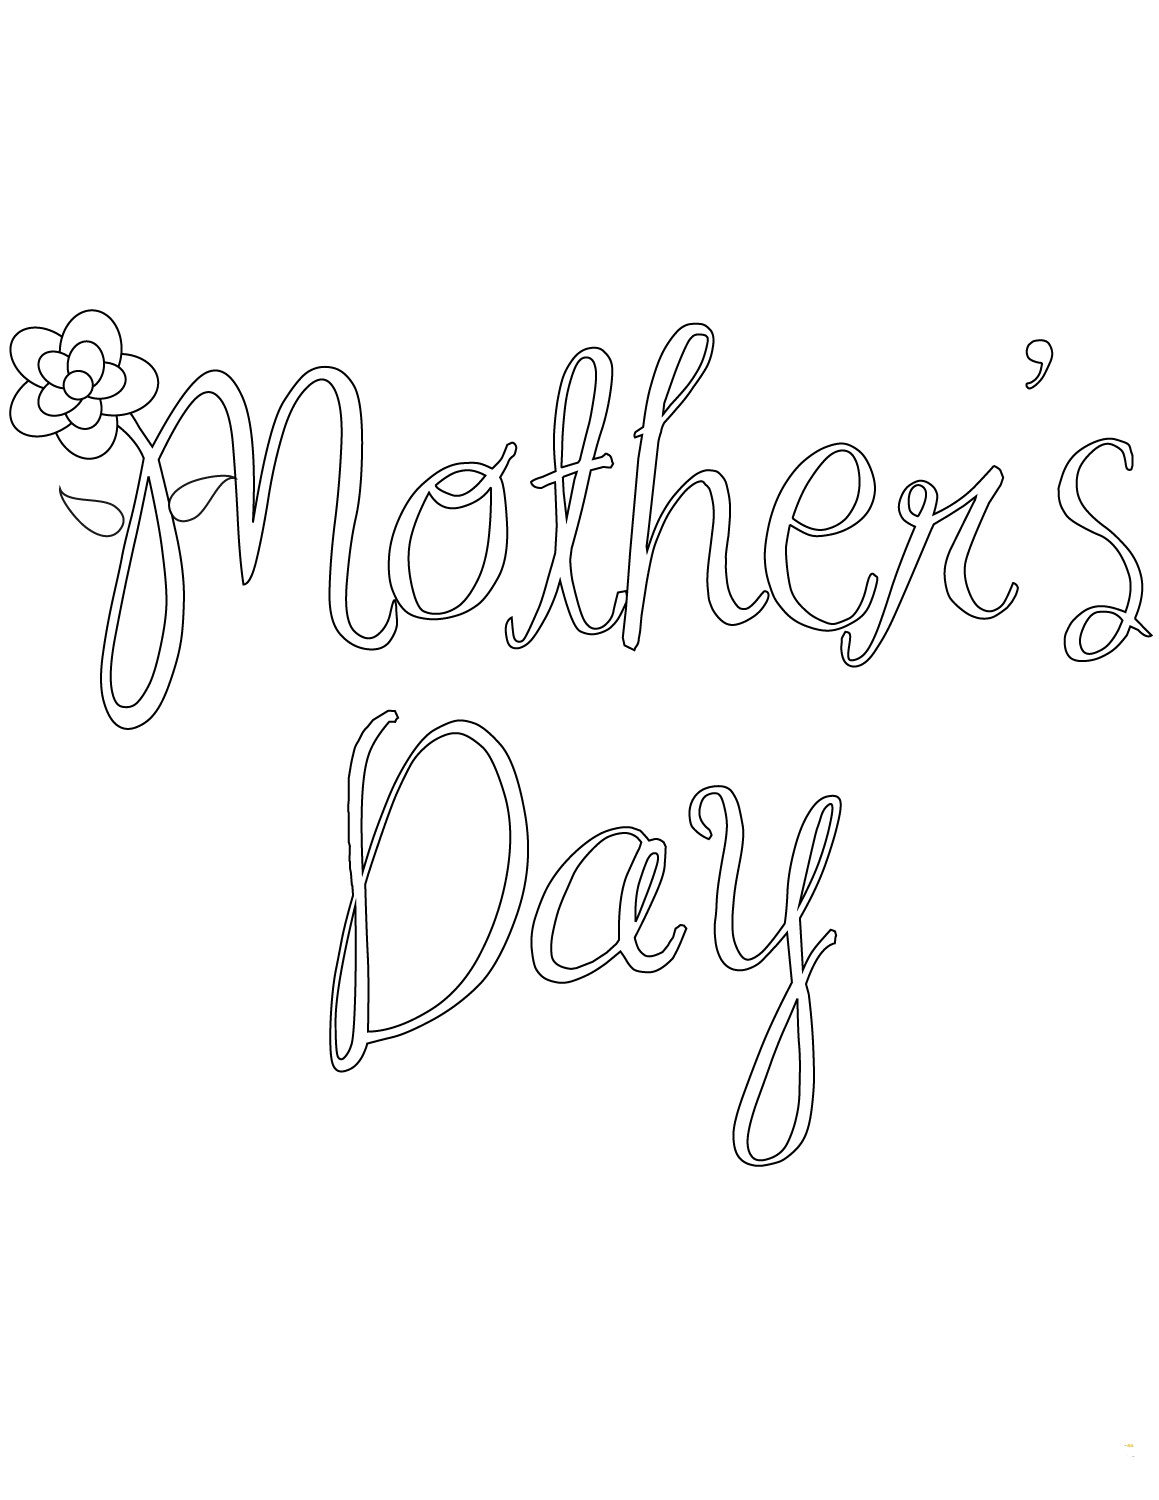 mothers day coloring pages for preschoolers - Coloring Pages Mothers Day